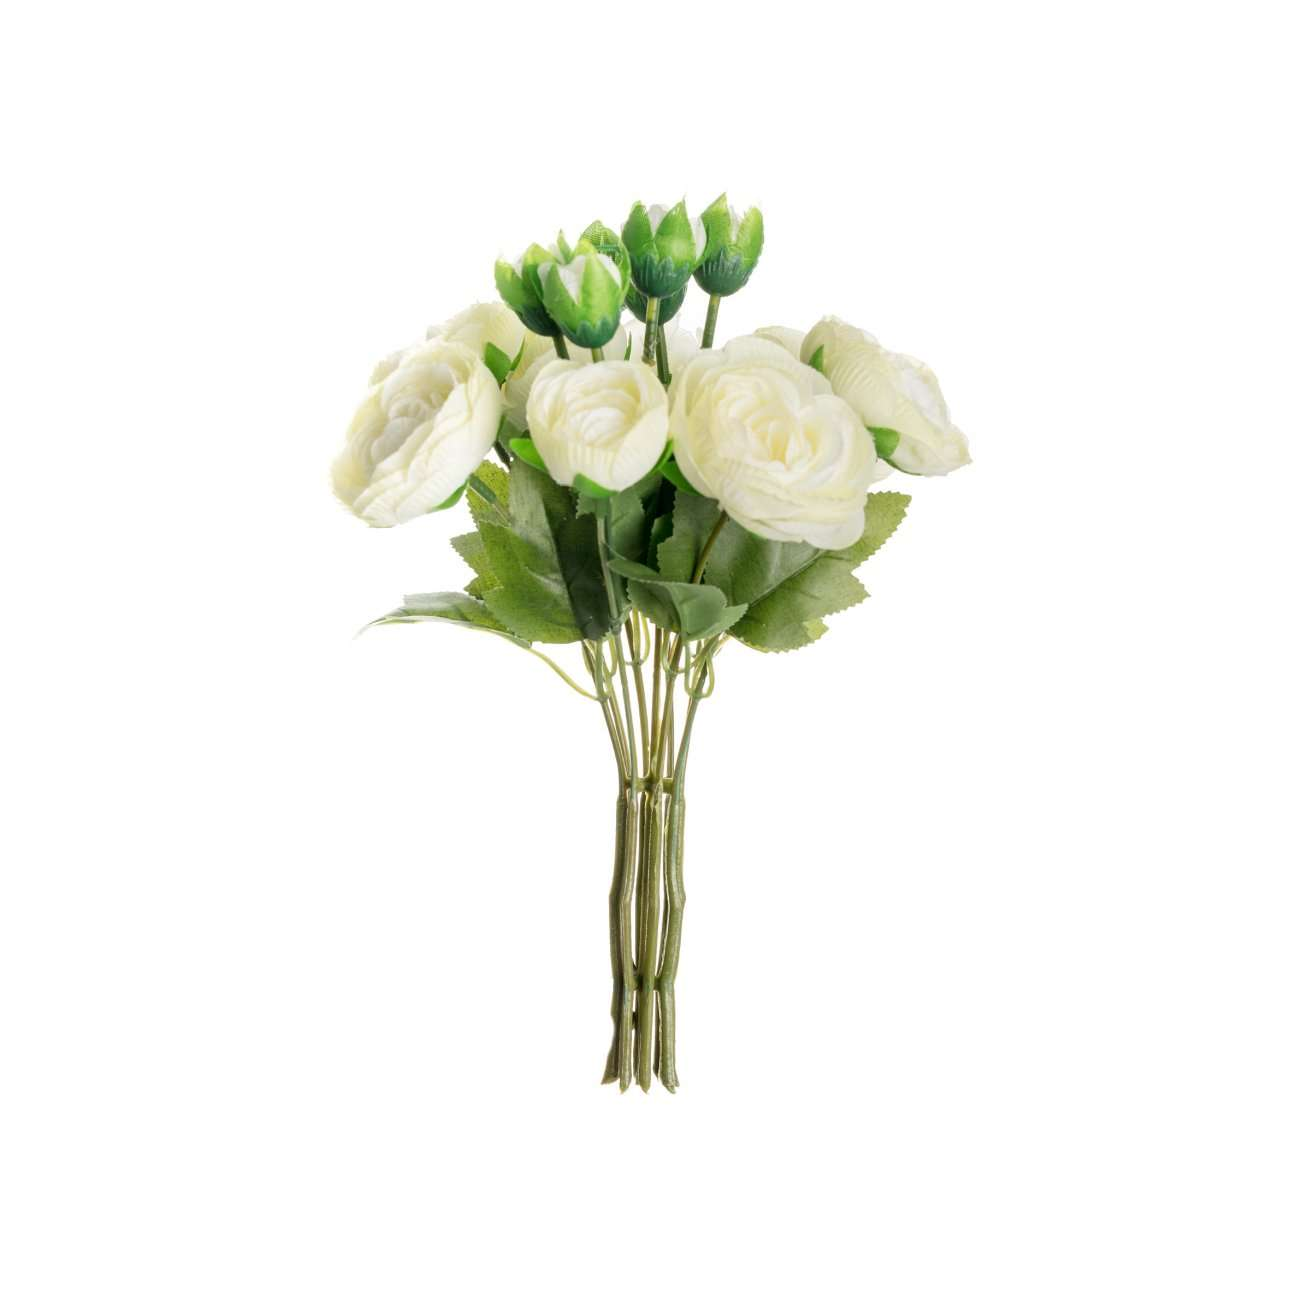 Artificial White Roses Bouquet H 25 cm